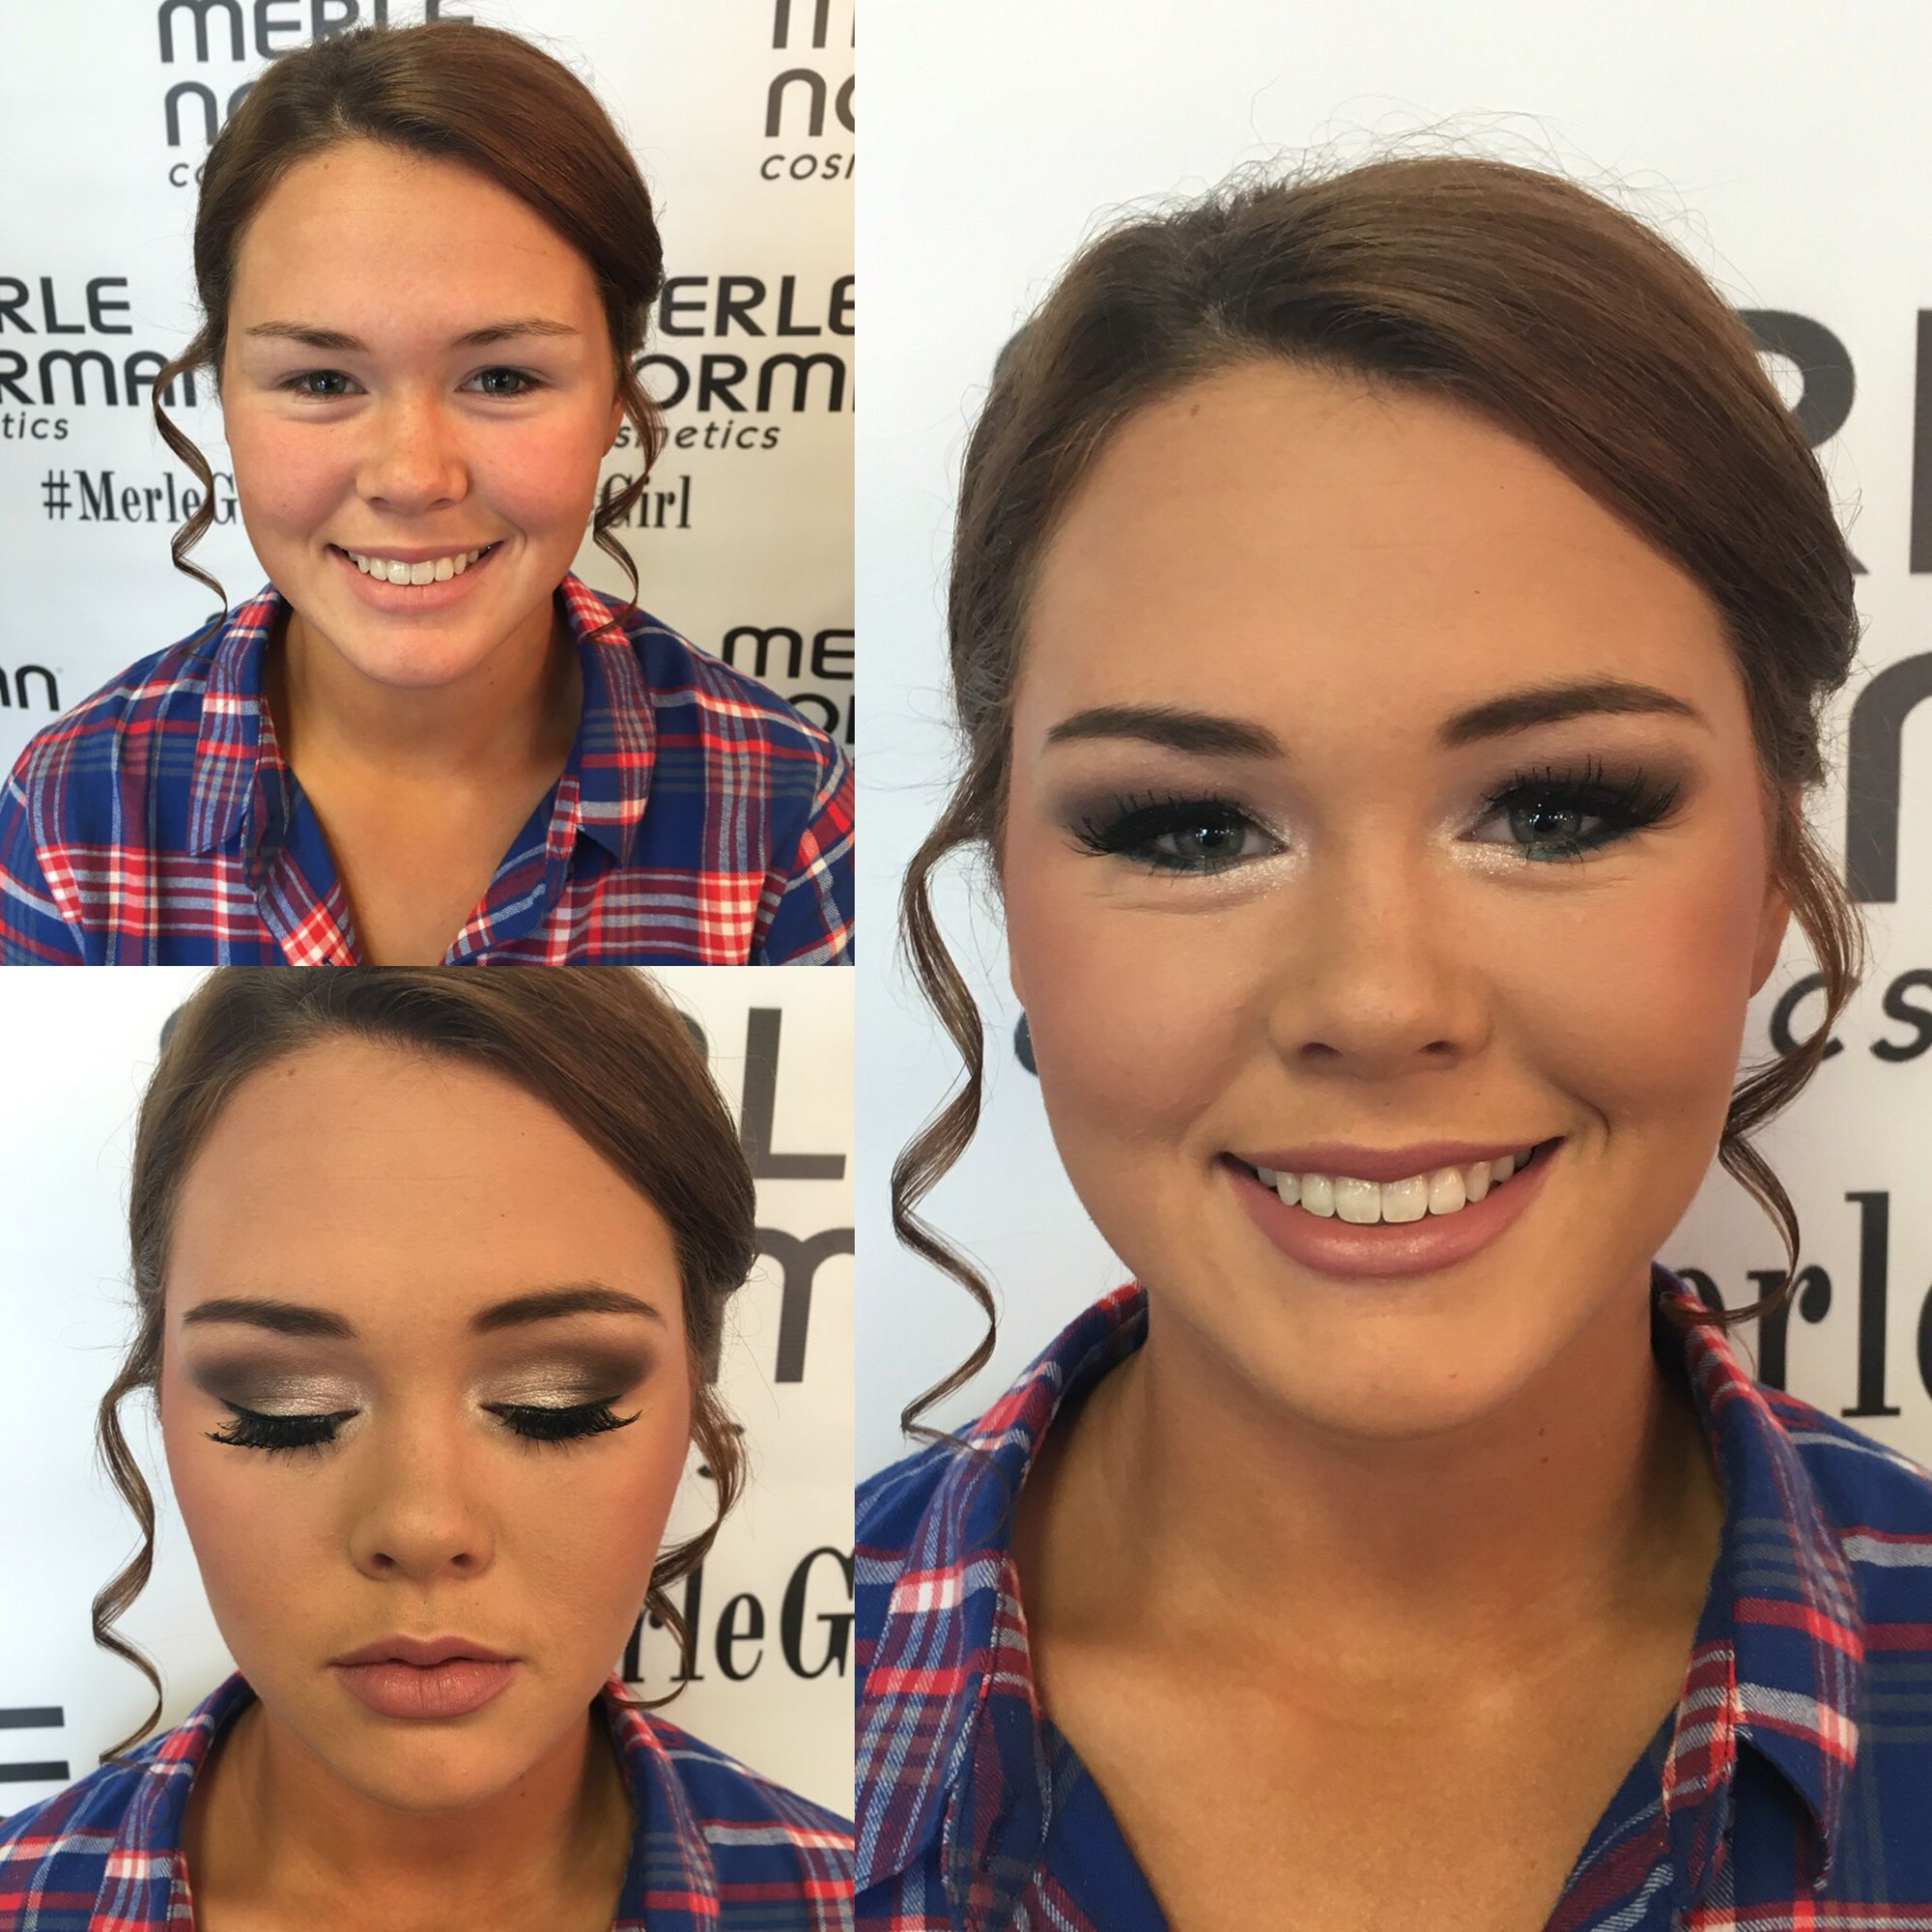 Prom Makeup Using All Merle Norman Cosmetics Makeup By Erica At Mn Orange Tx Celebrity Makeup Artist Prom Makeup Makeup Services